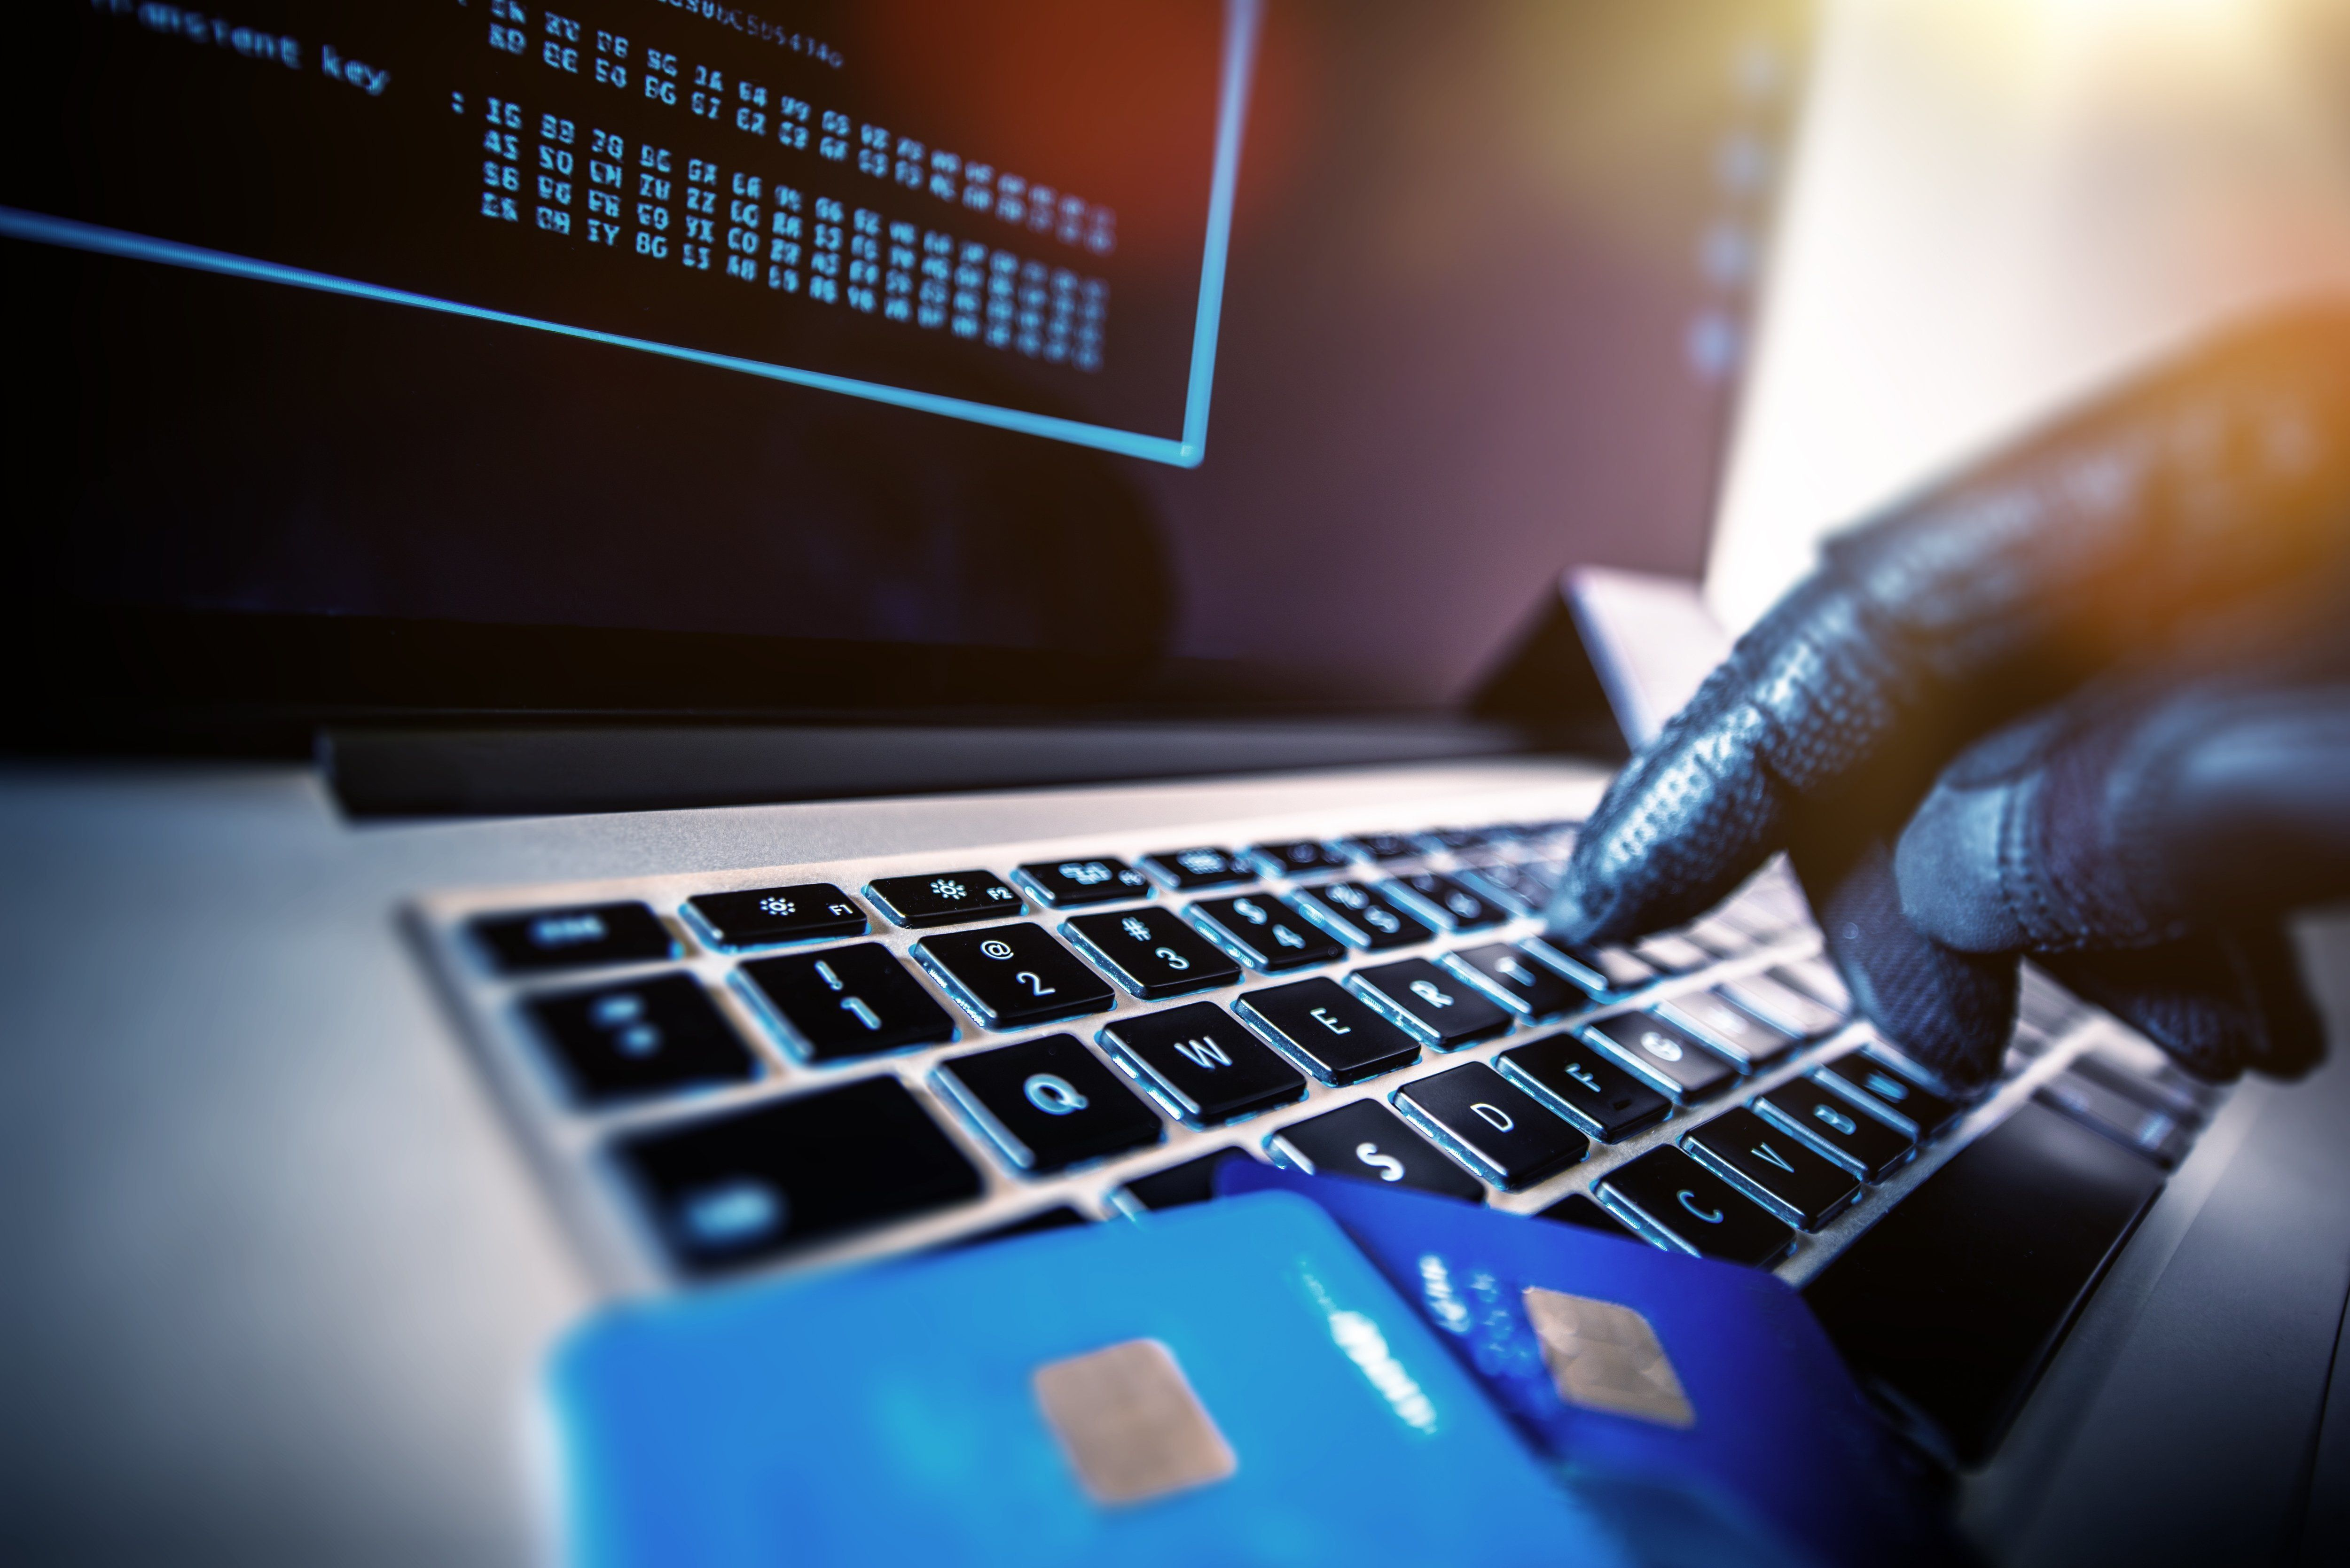 Identity Theft Reaches 'Epidemic' Levels As Online Fraud